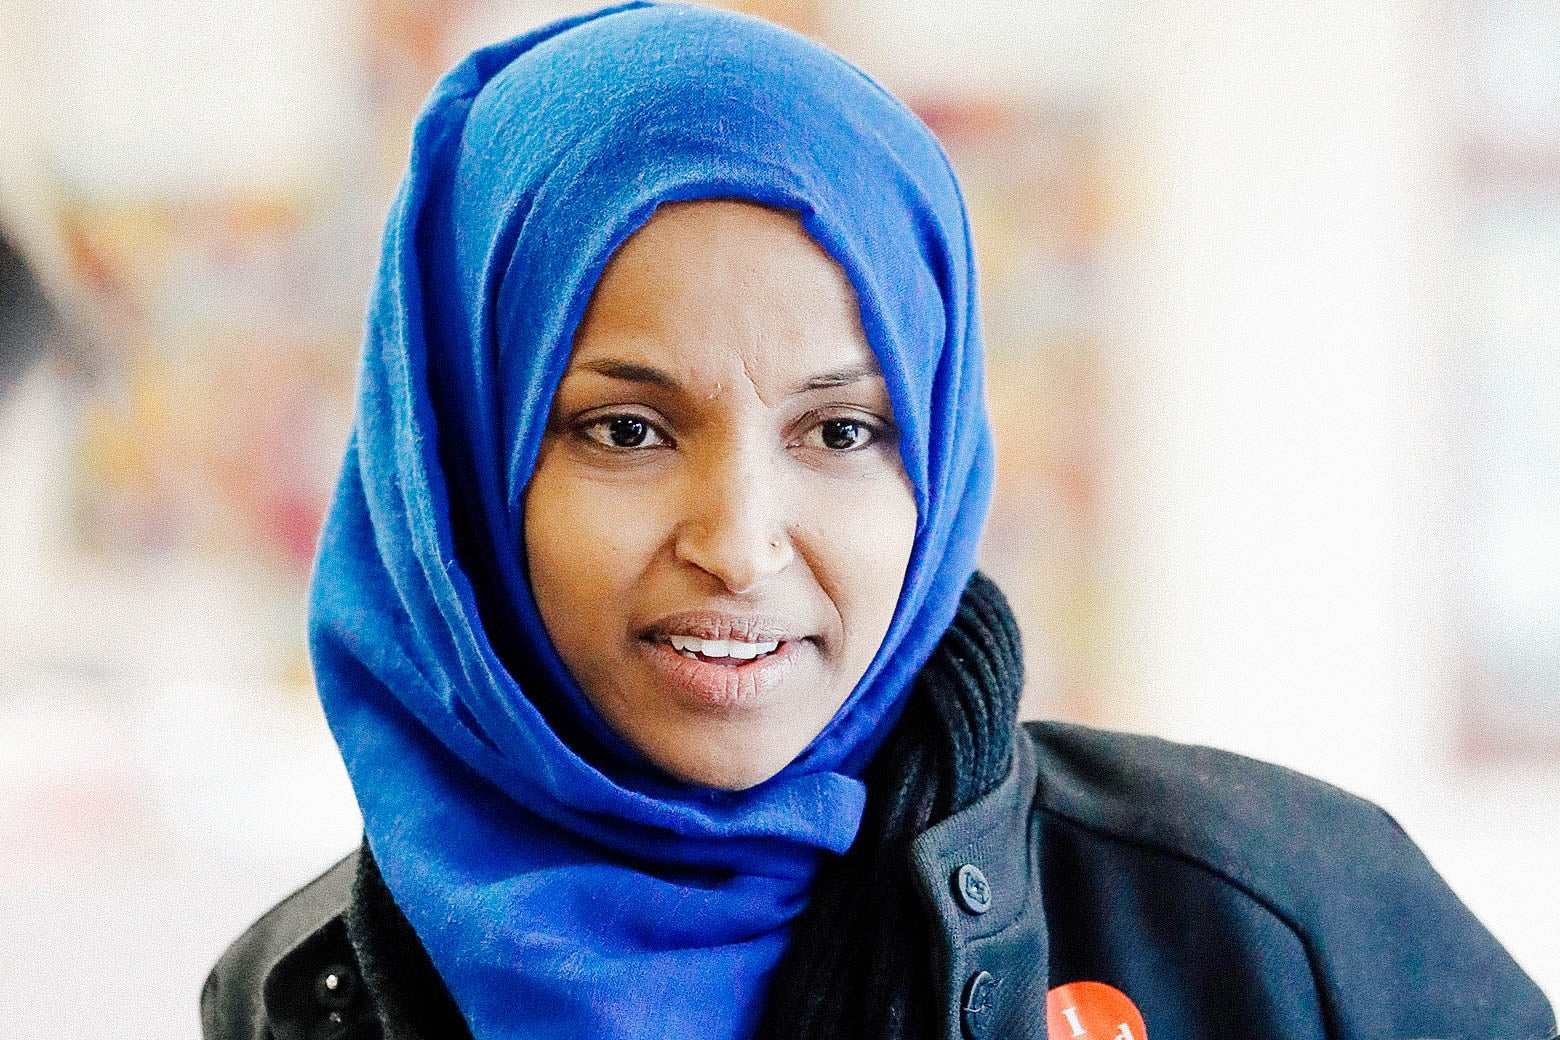 Ilhan Omar affixes a political button to her coat on Election Day in Minnesota.